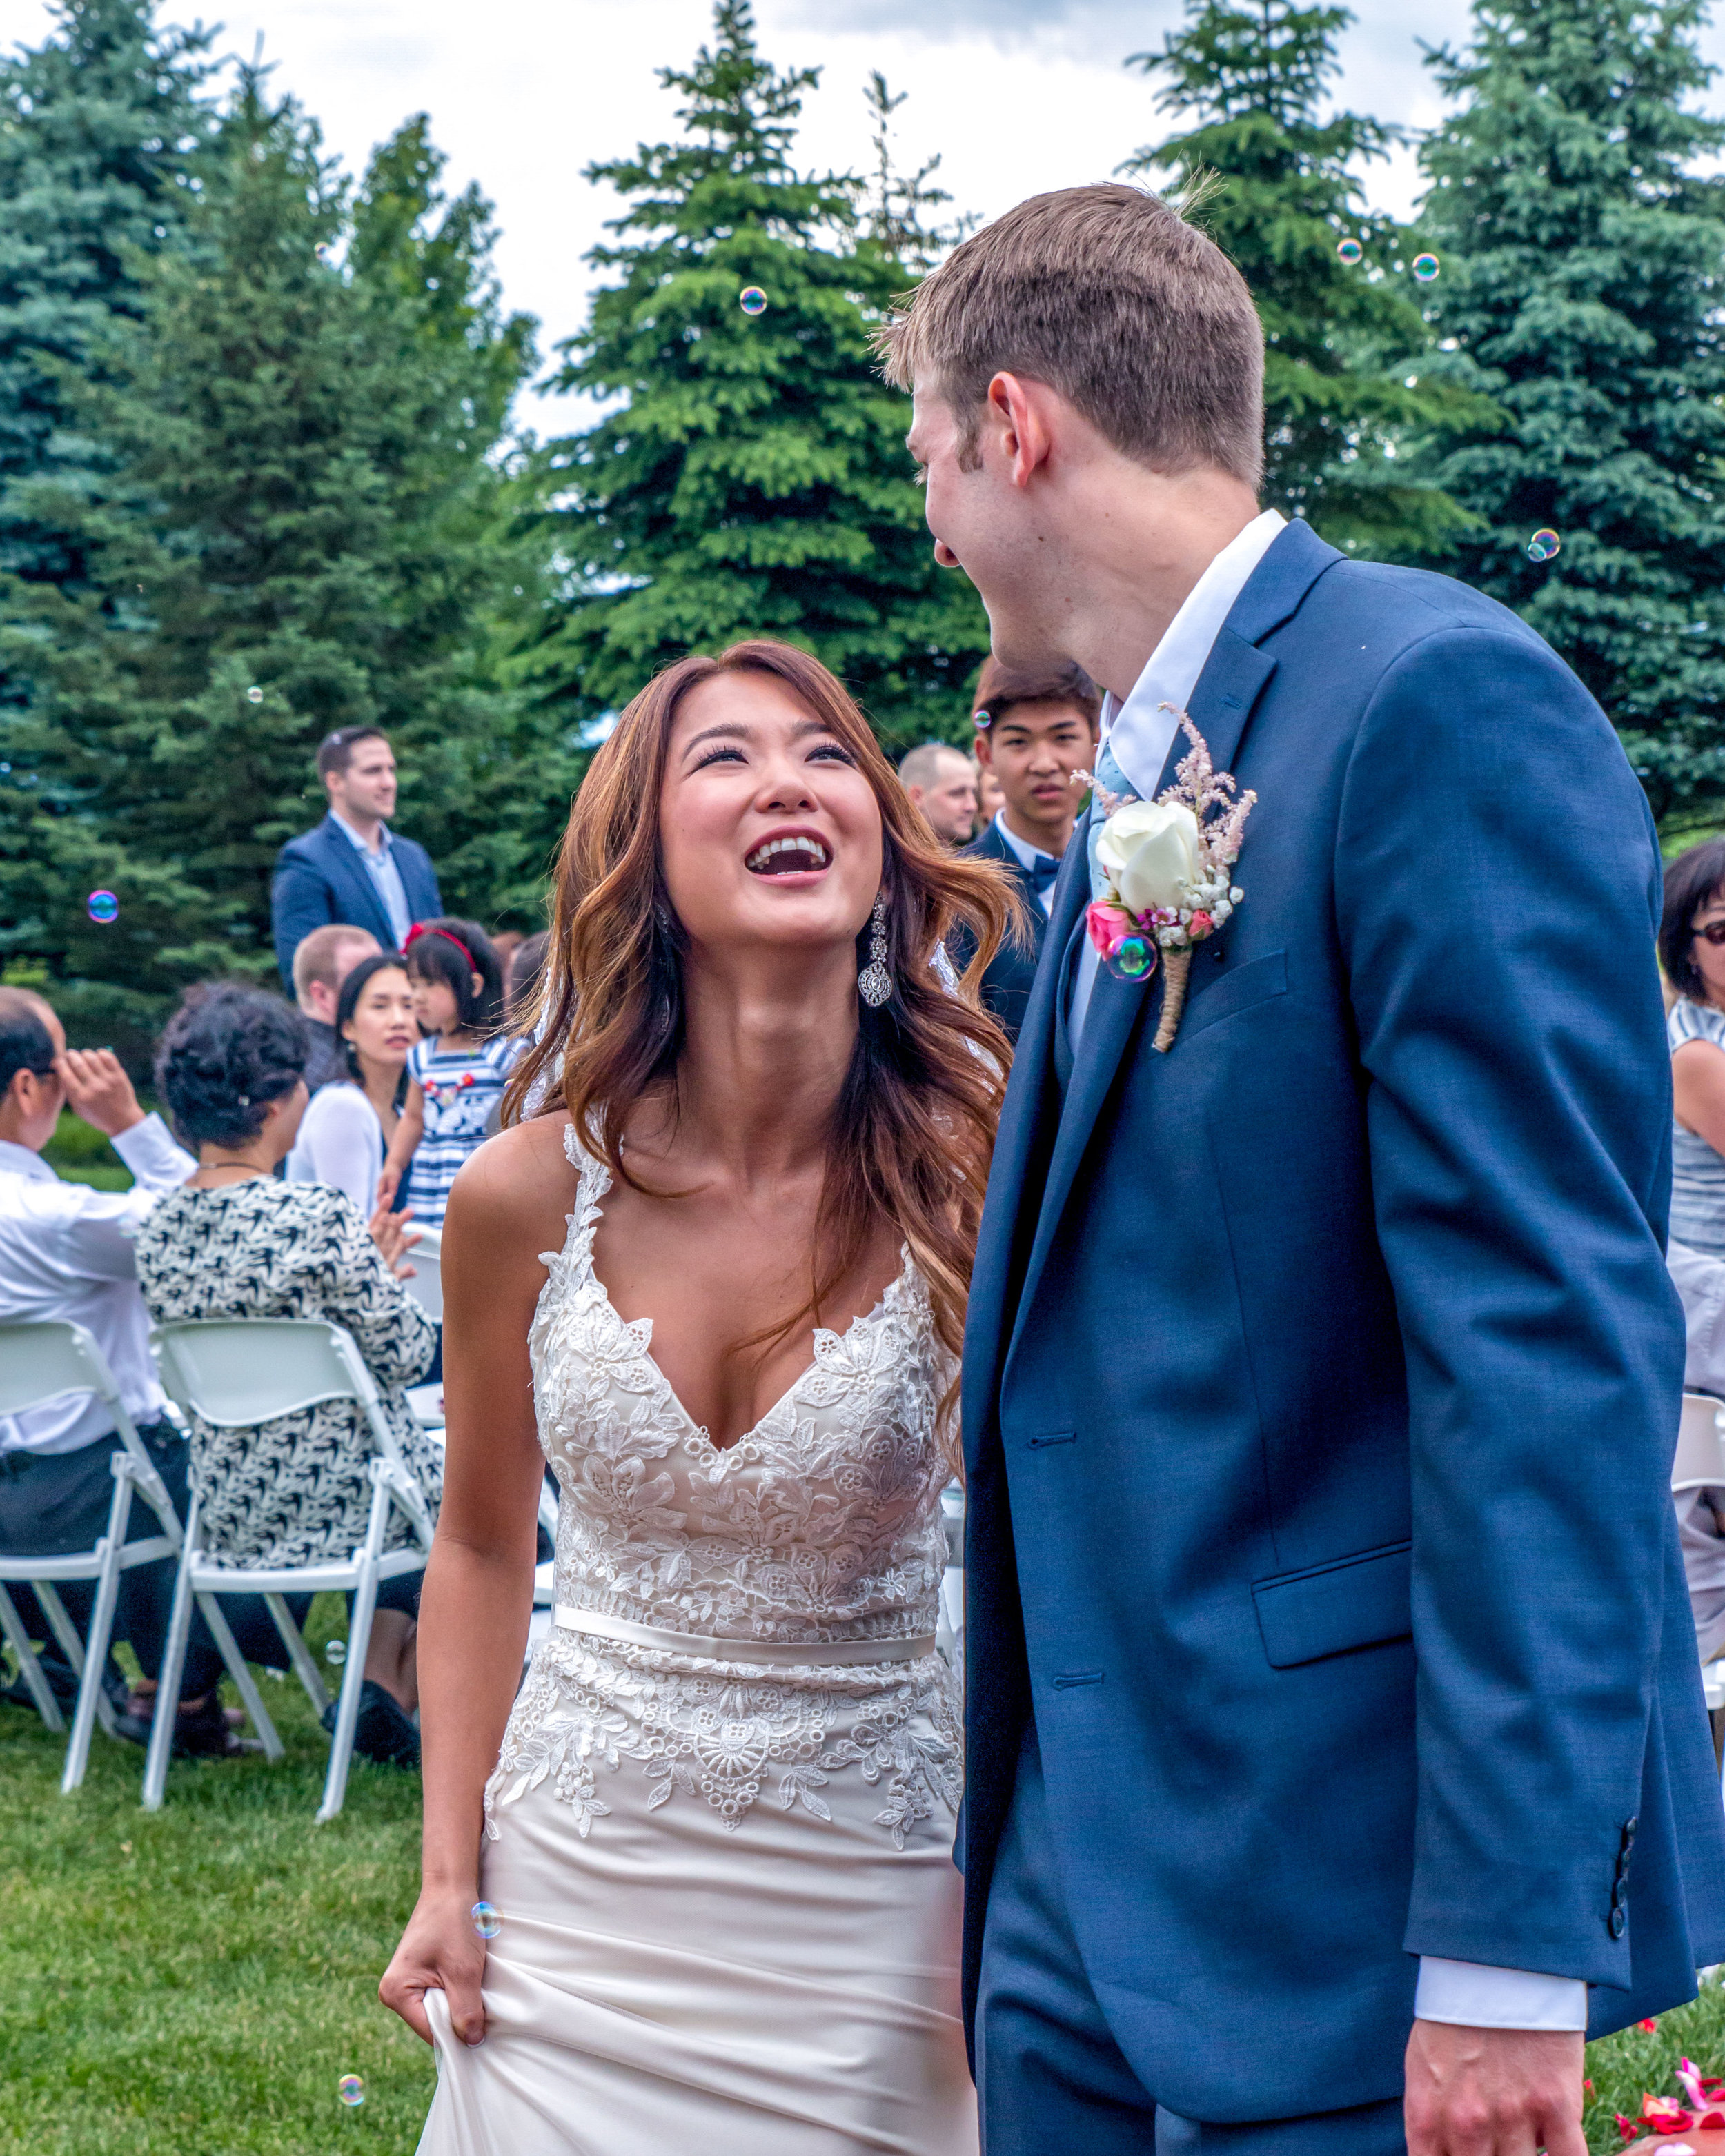 Minnesota Wedding at Glenhaven, outdoor ceremony, Fab Weddings, ceremony laughs